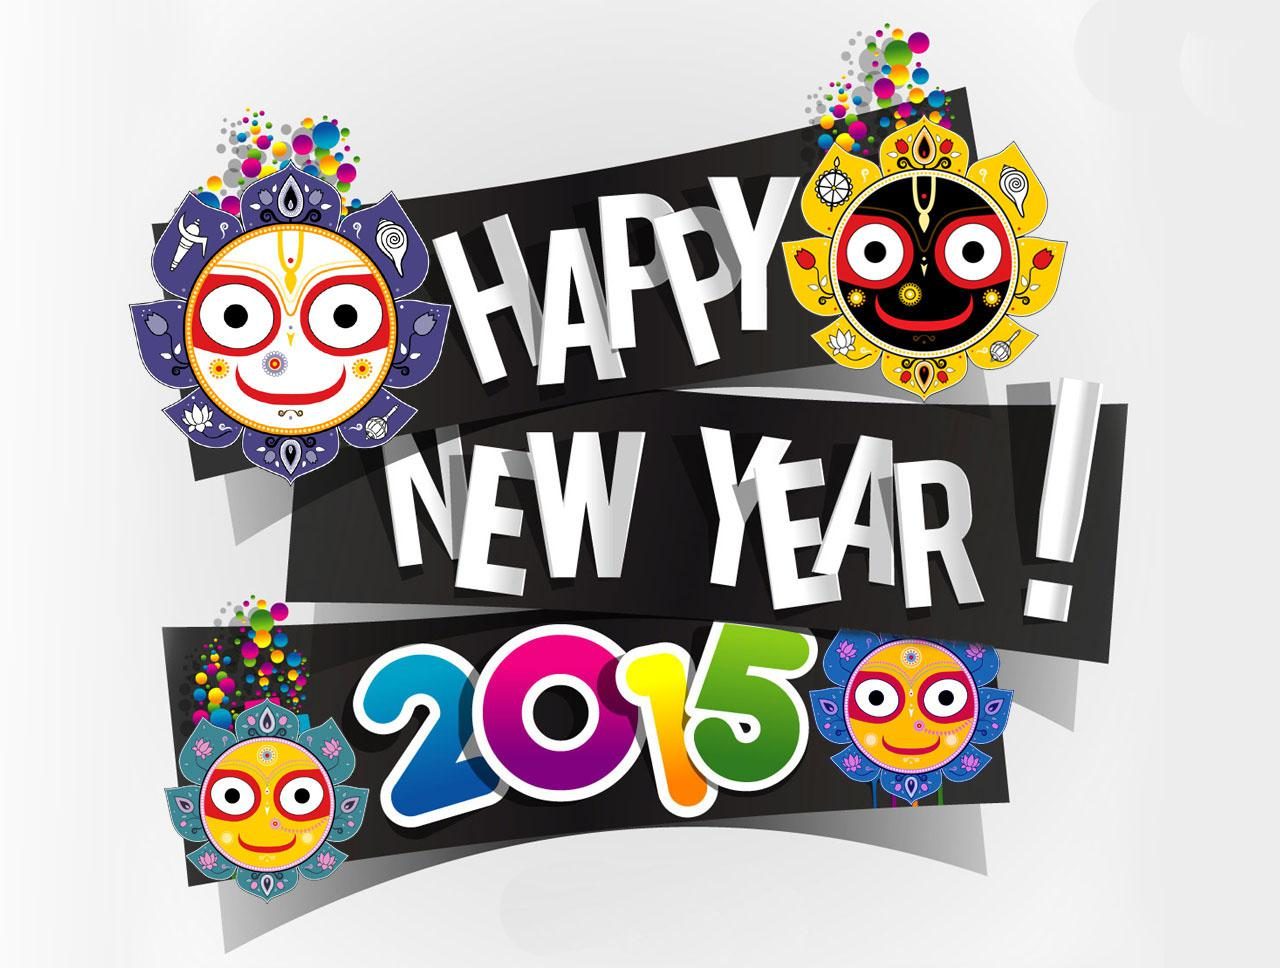 1280x968 new year clip art free download – Merry Christmas amp Happy New Year